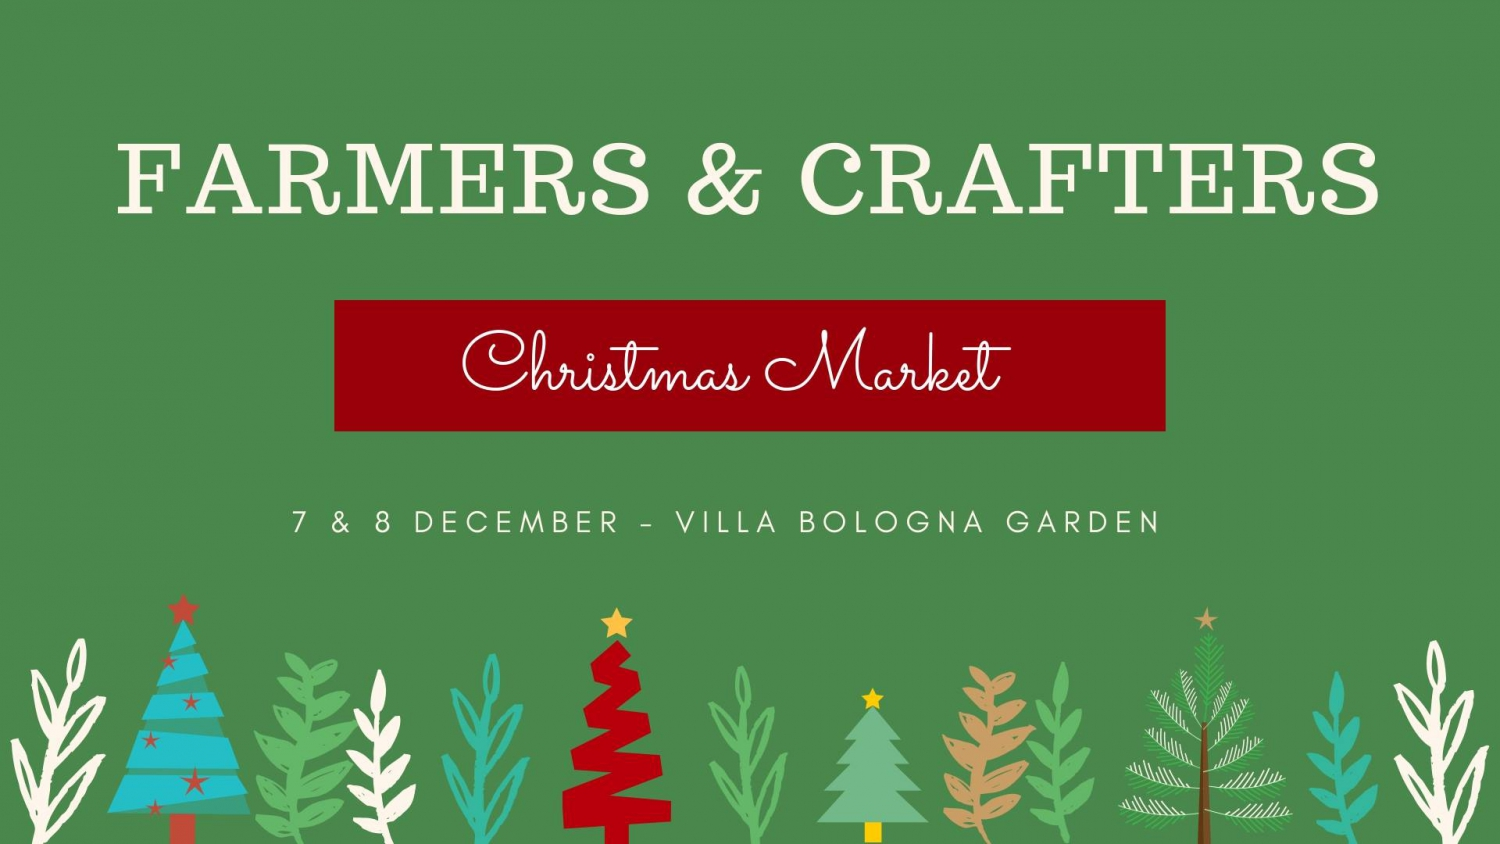 Farmers & Crafters Christmas Market